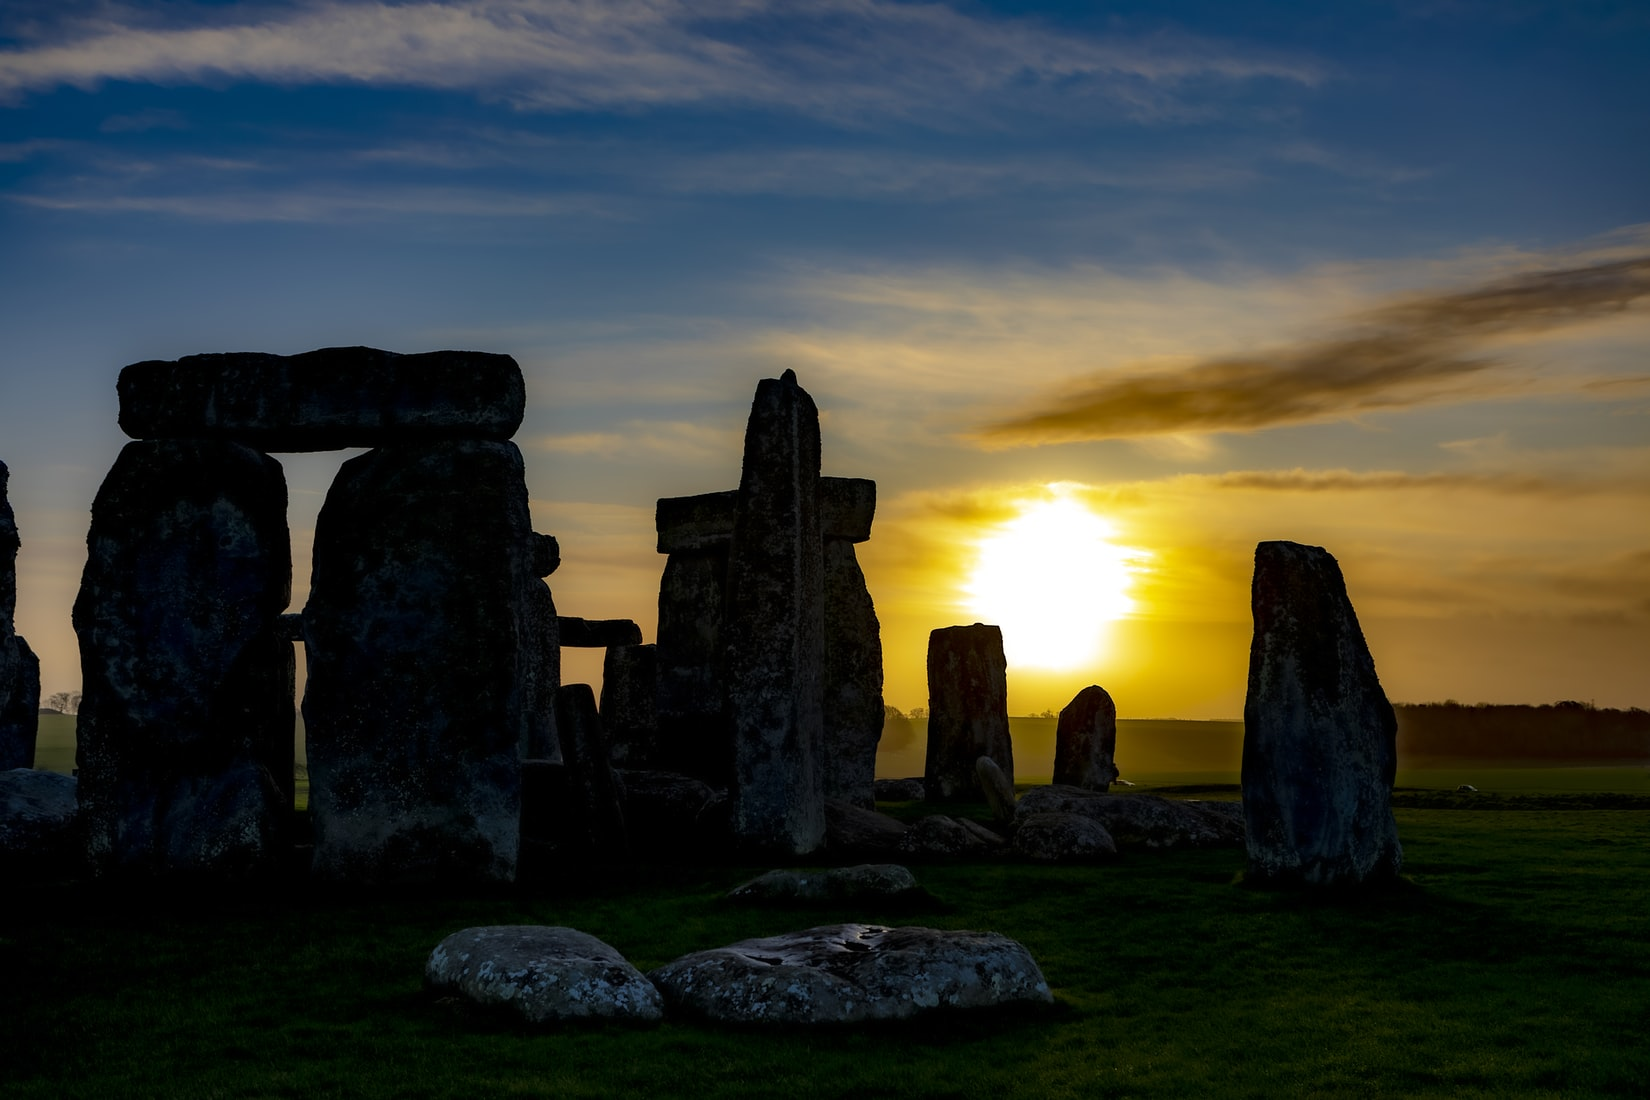 pagan monuments often lined up with the sunrise on the winter solstice